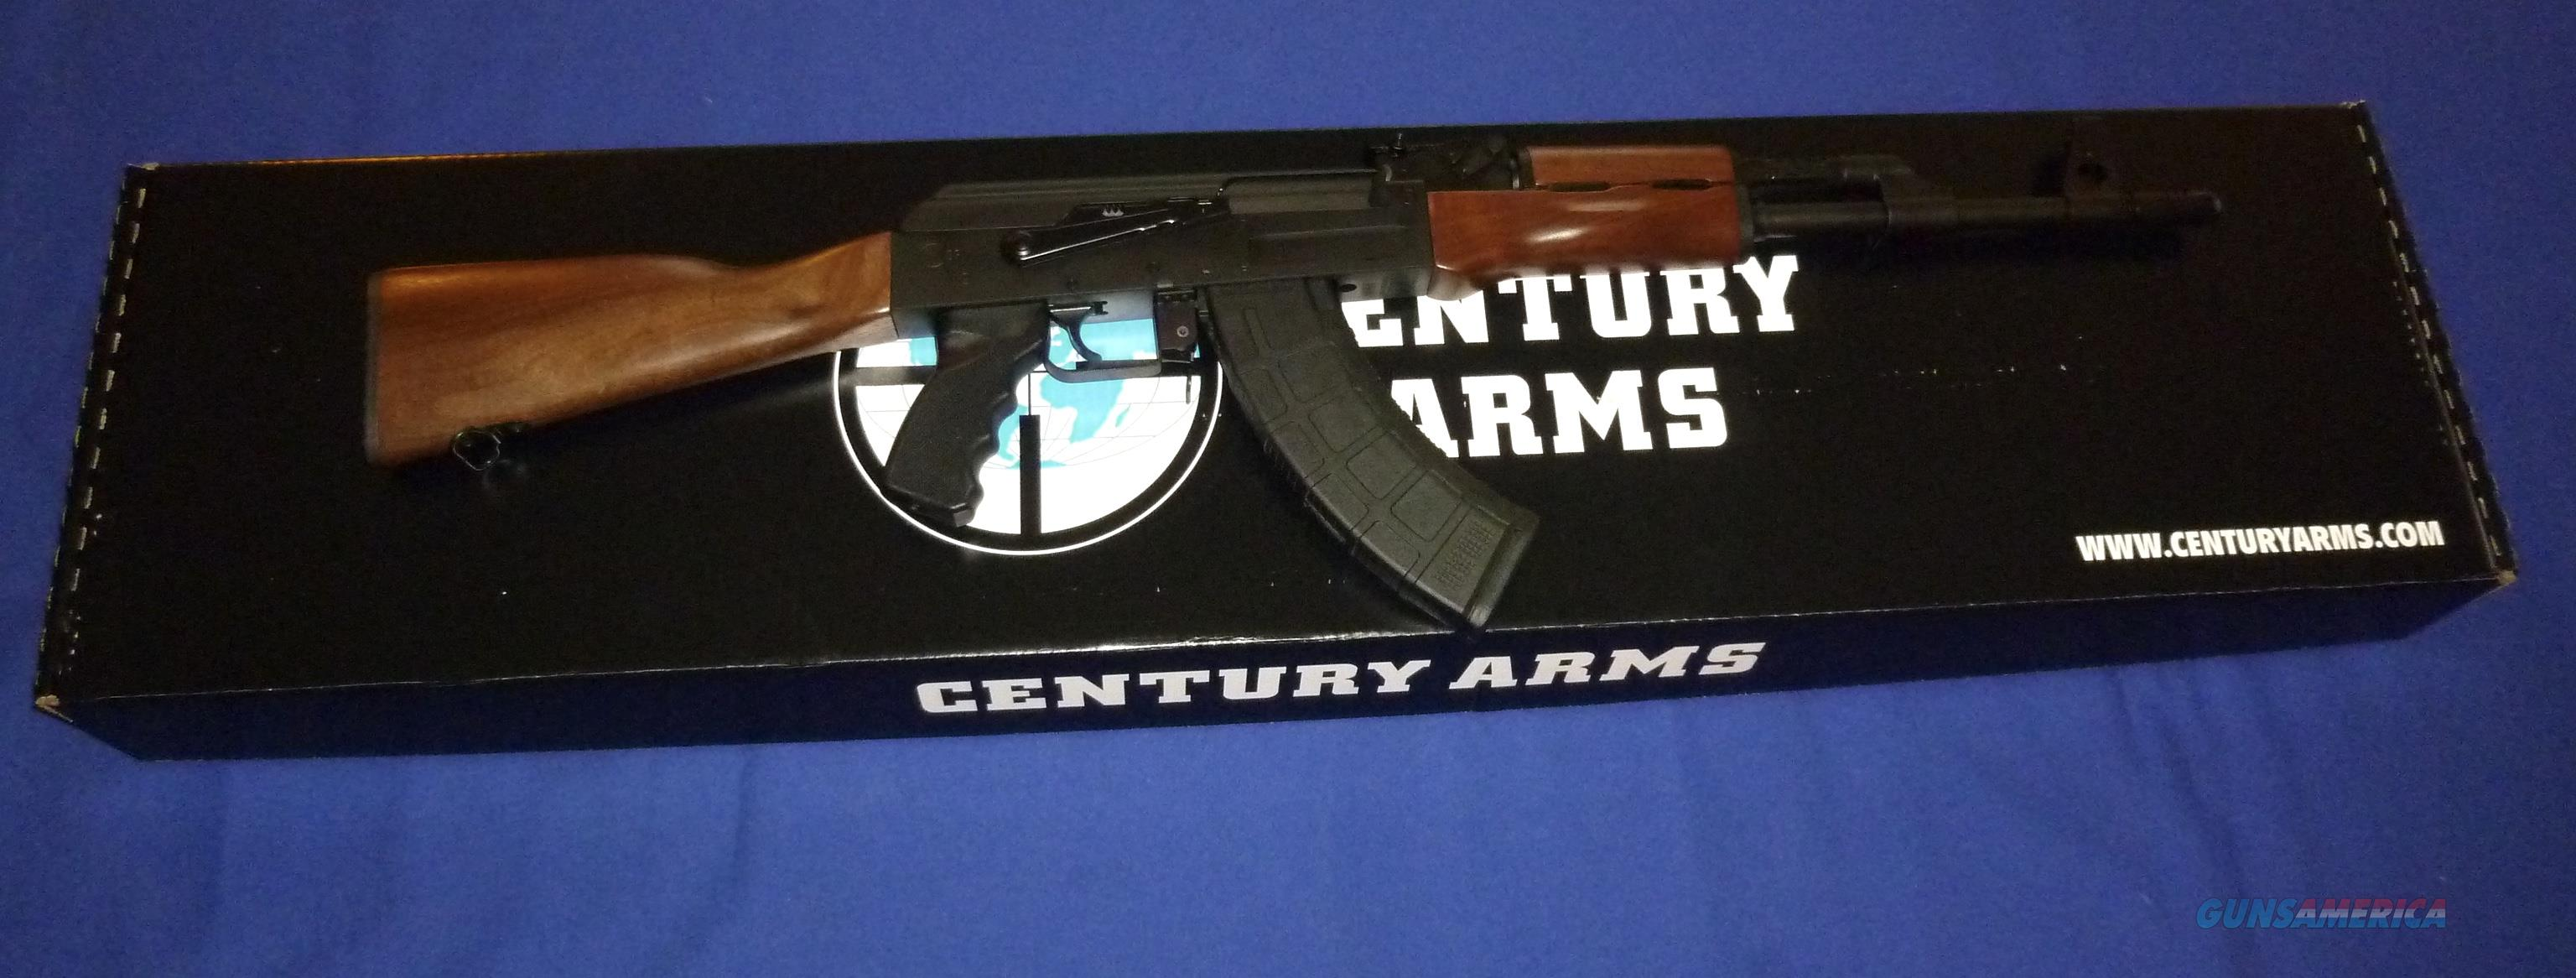 CENTURY ARMS C39V2 7.62x39 AK-47 RIFLE W/MILLED RECEIVER AND WALNUT STOCK NEW  Guns > Rifles > Century International Arms - Rifles > Rifles